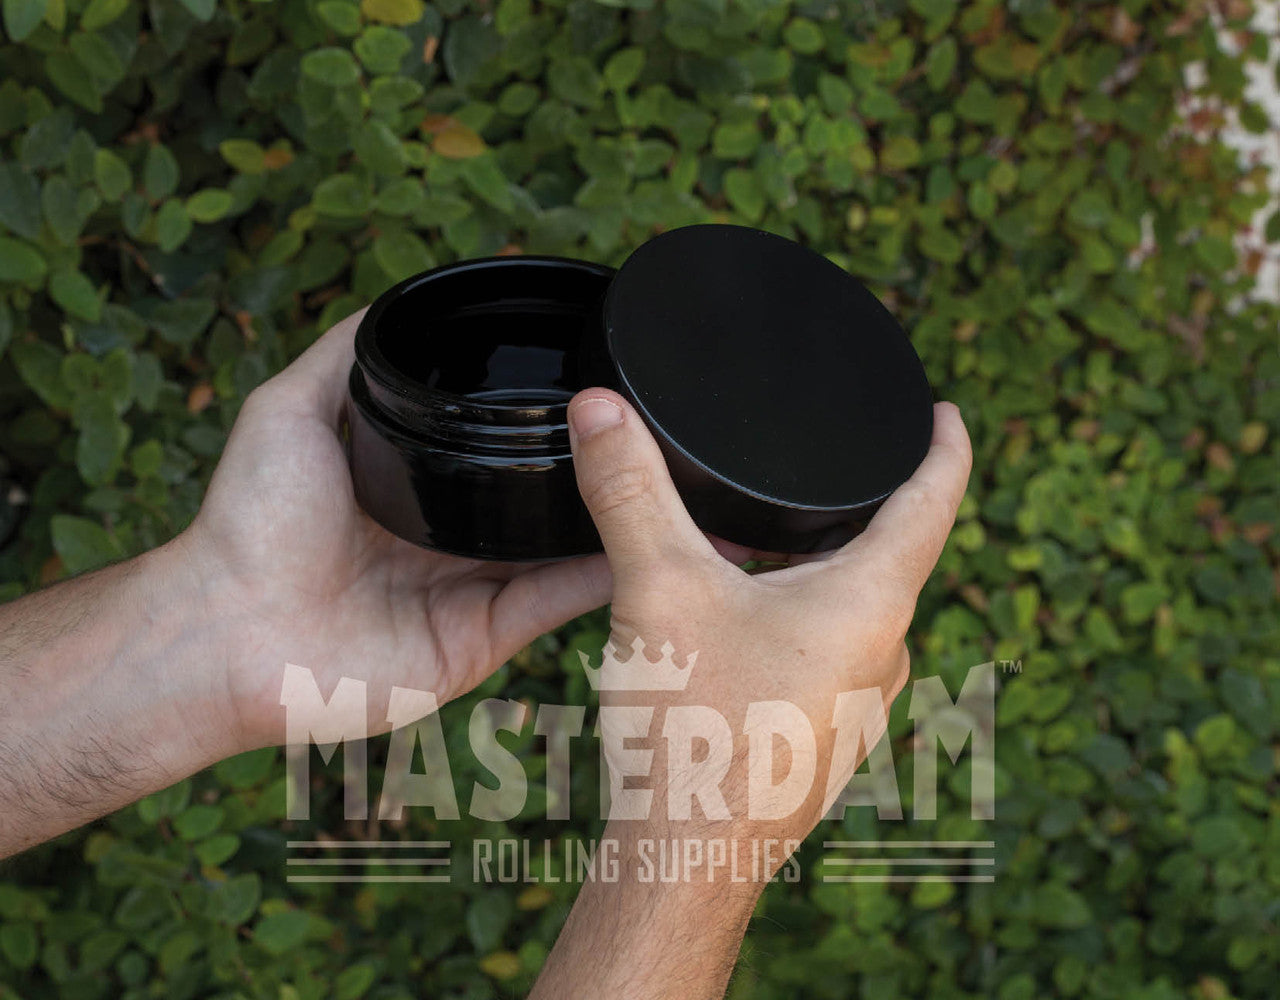 Masterdam Jars 200ml StashShield UV Glass Jar